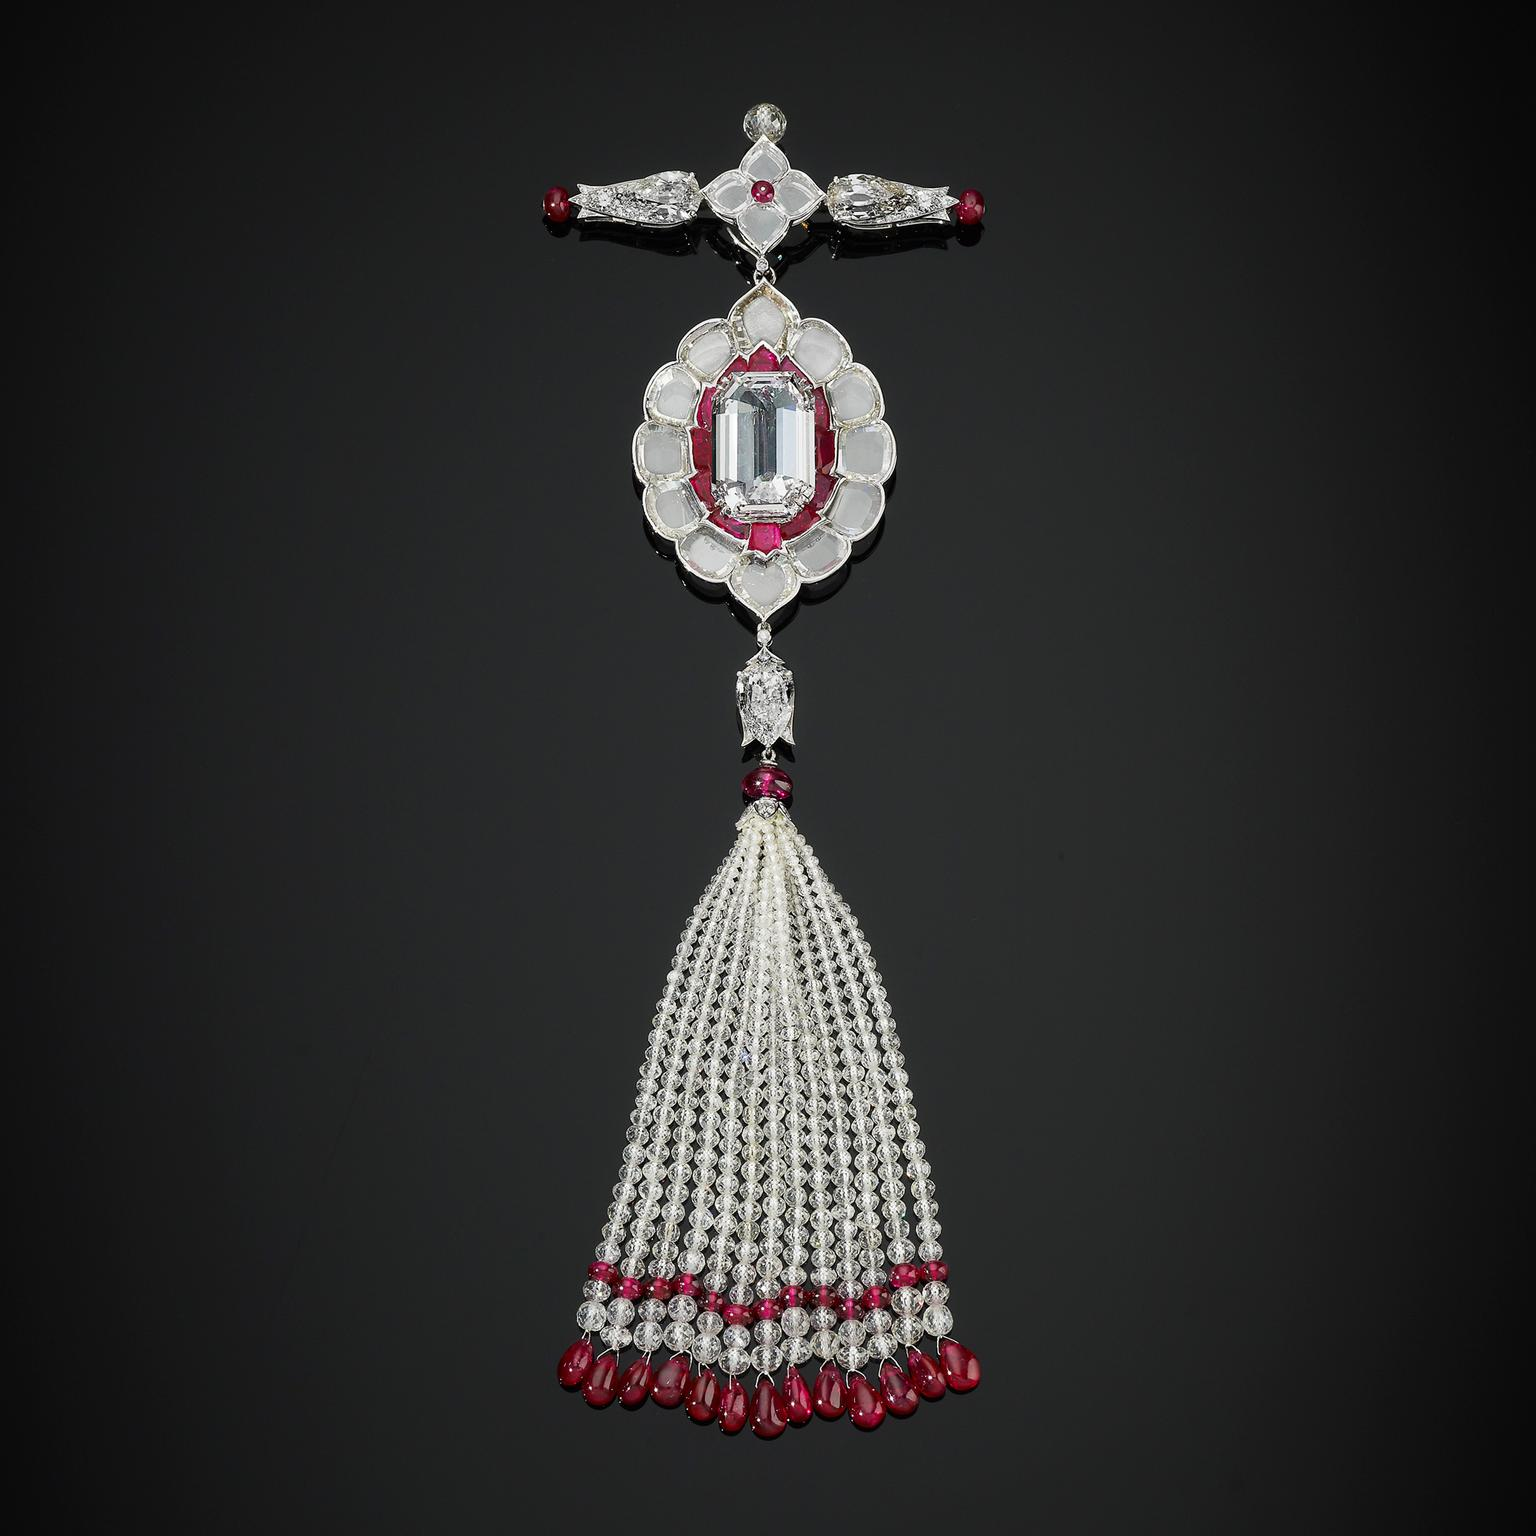 Bhagat Indian pendant brooch with diamonds and rubies